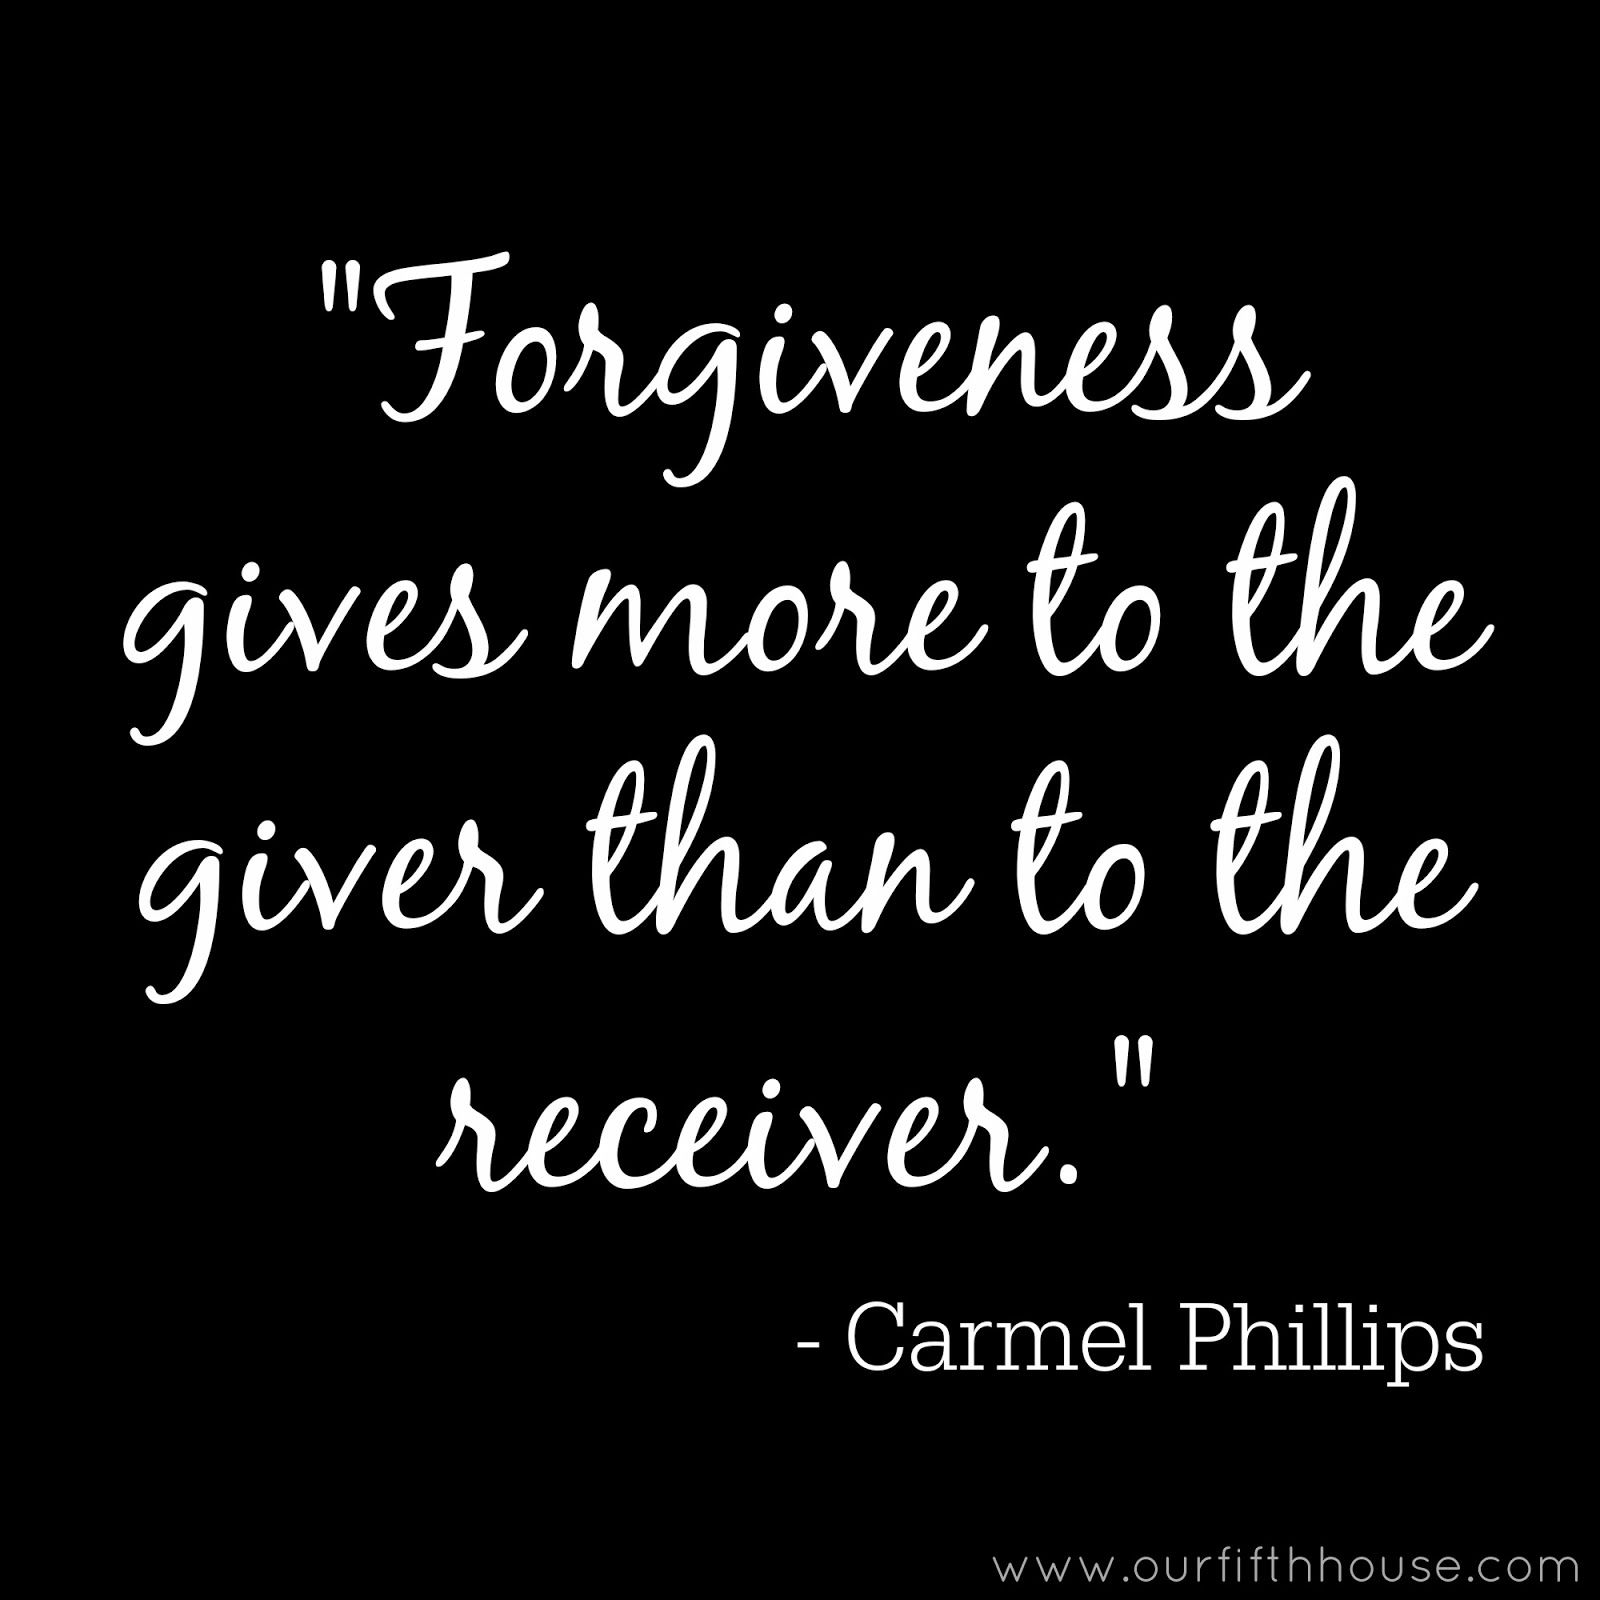 The Giver Book Quotes Forgiveness Gives More To The Giver Than To The Receiver